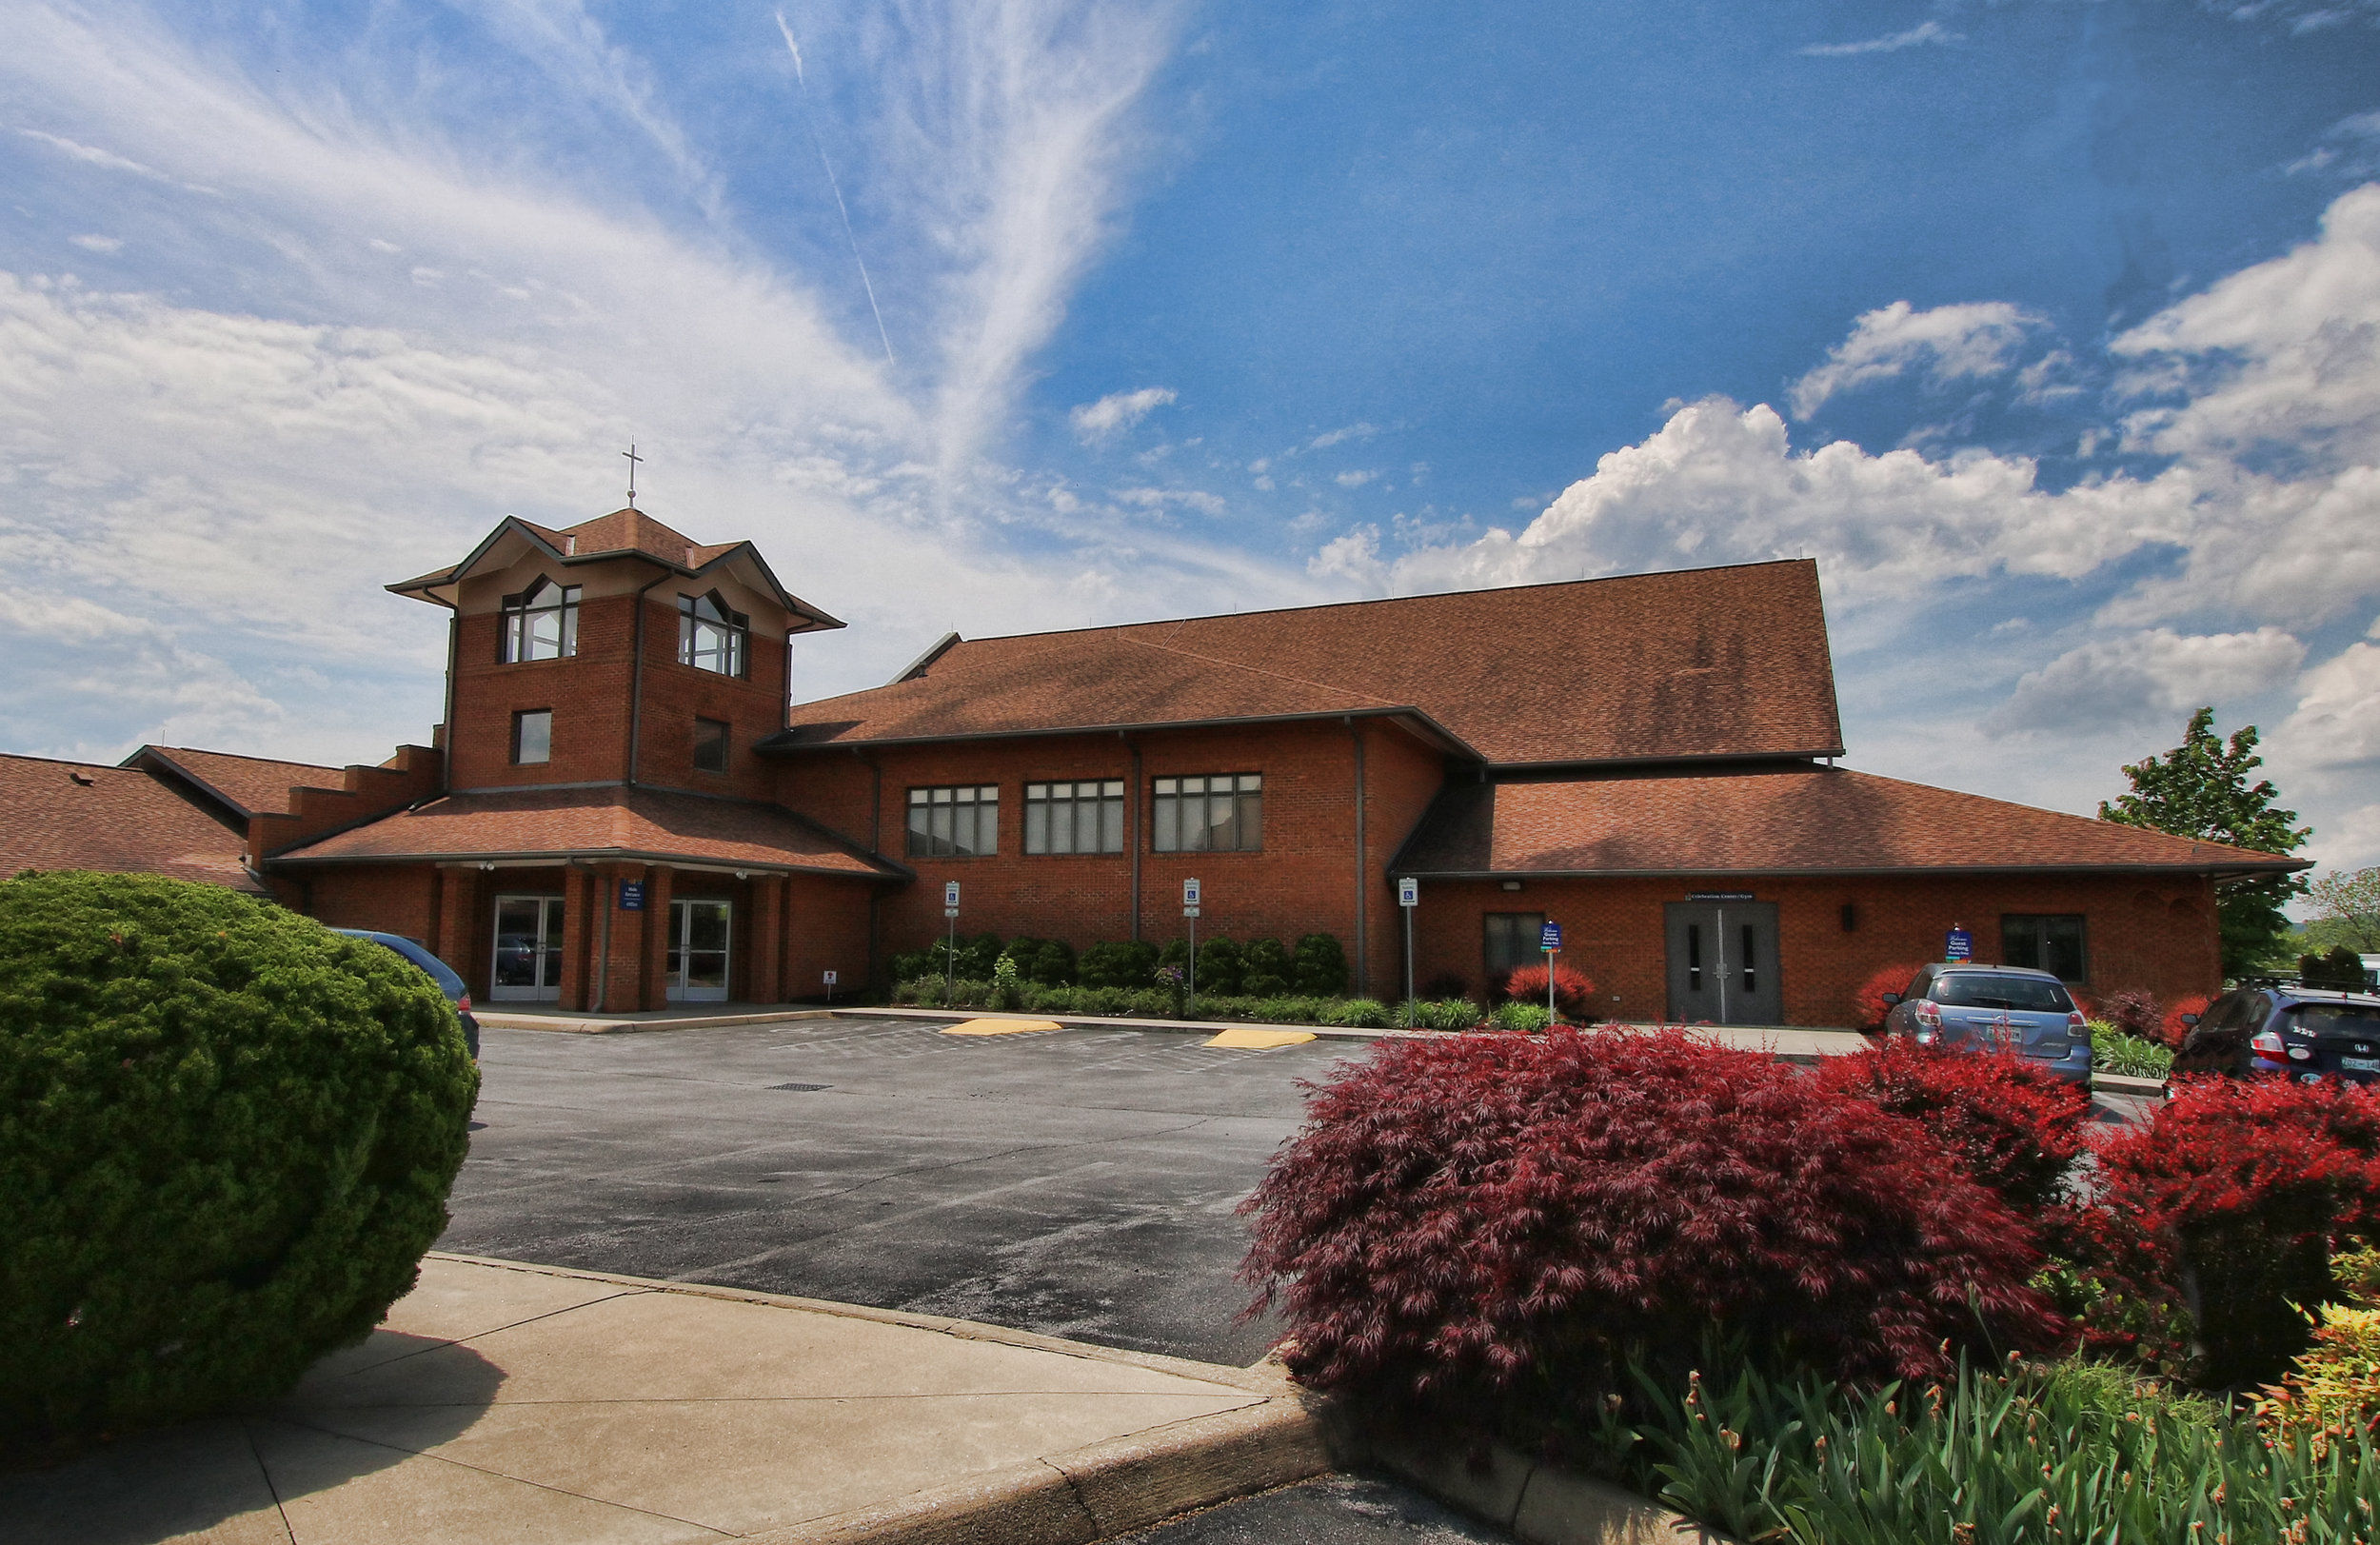 WESLEY MEMORIAL UNITED METHODIST CHURCH FAMILY LIFE CENTER